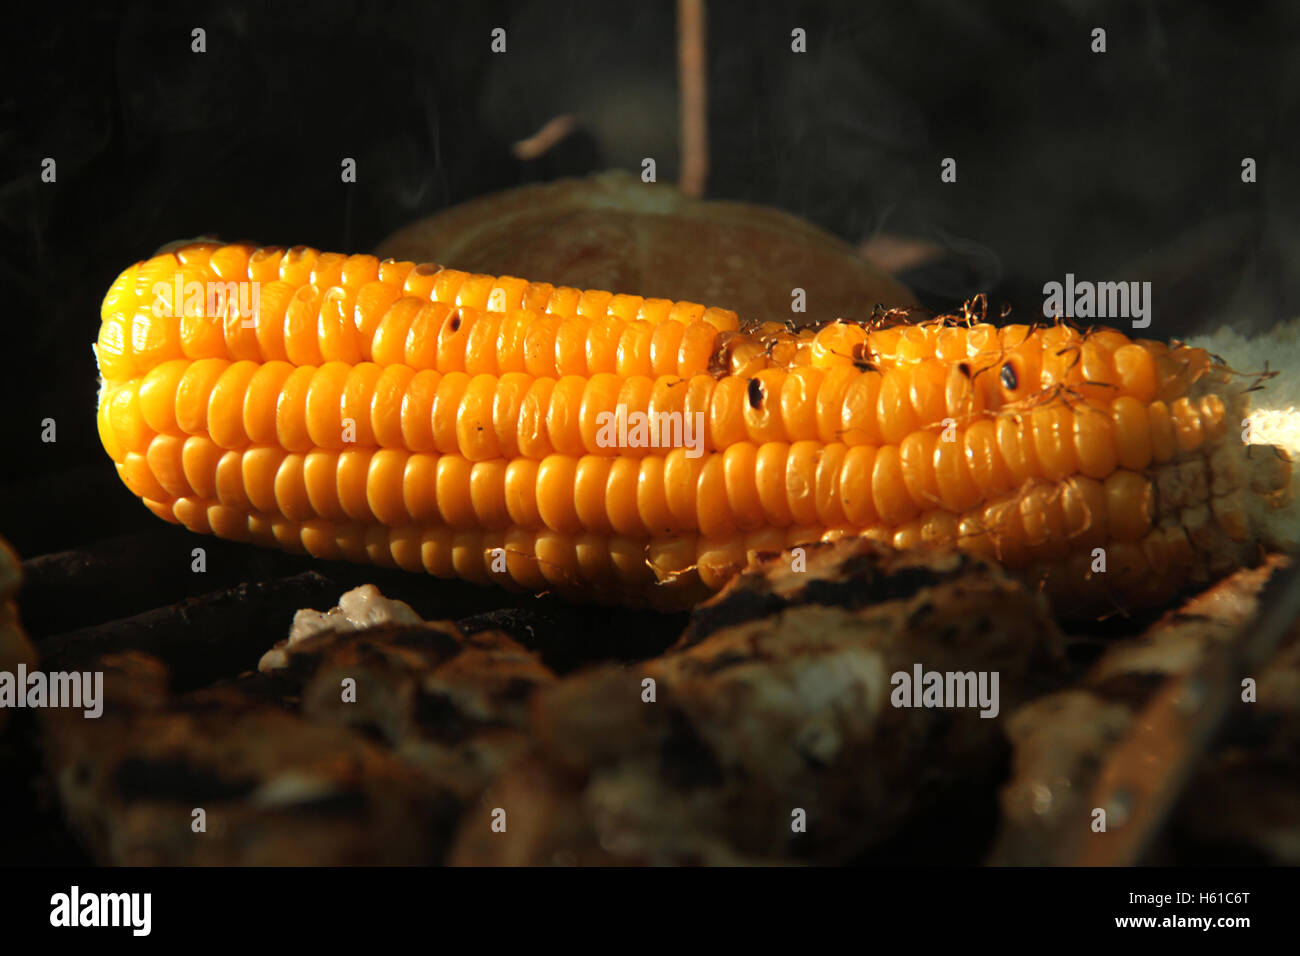 Close-up of corn grilled at outdoor camping - Stock Image